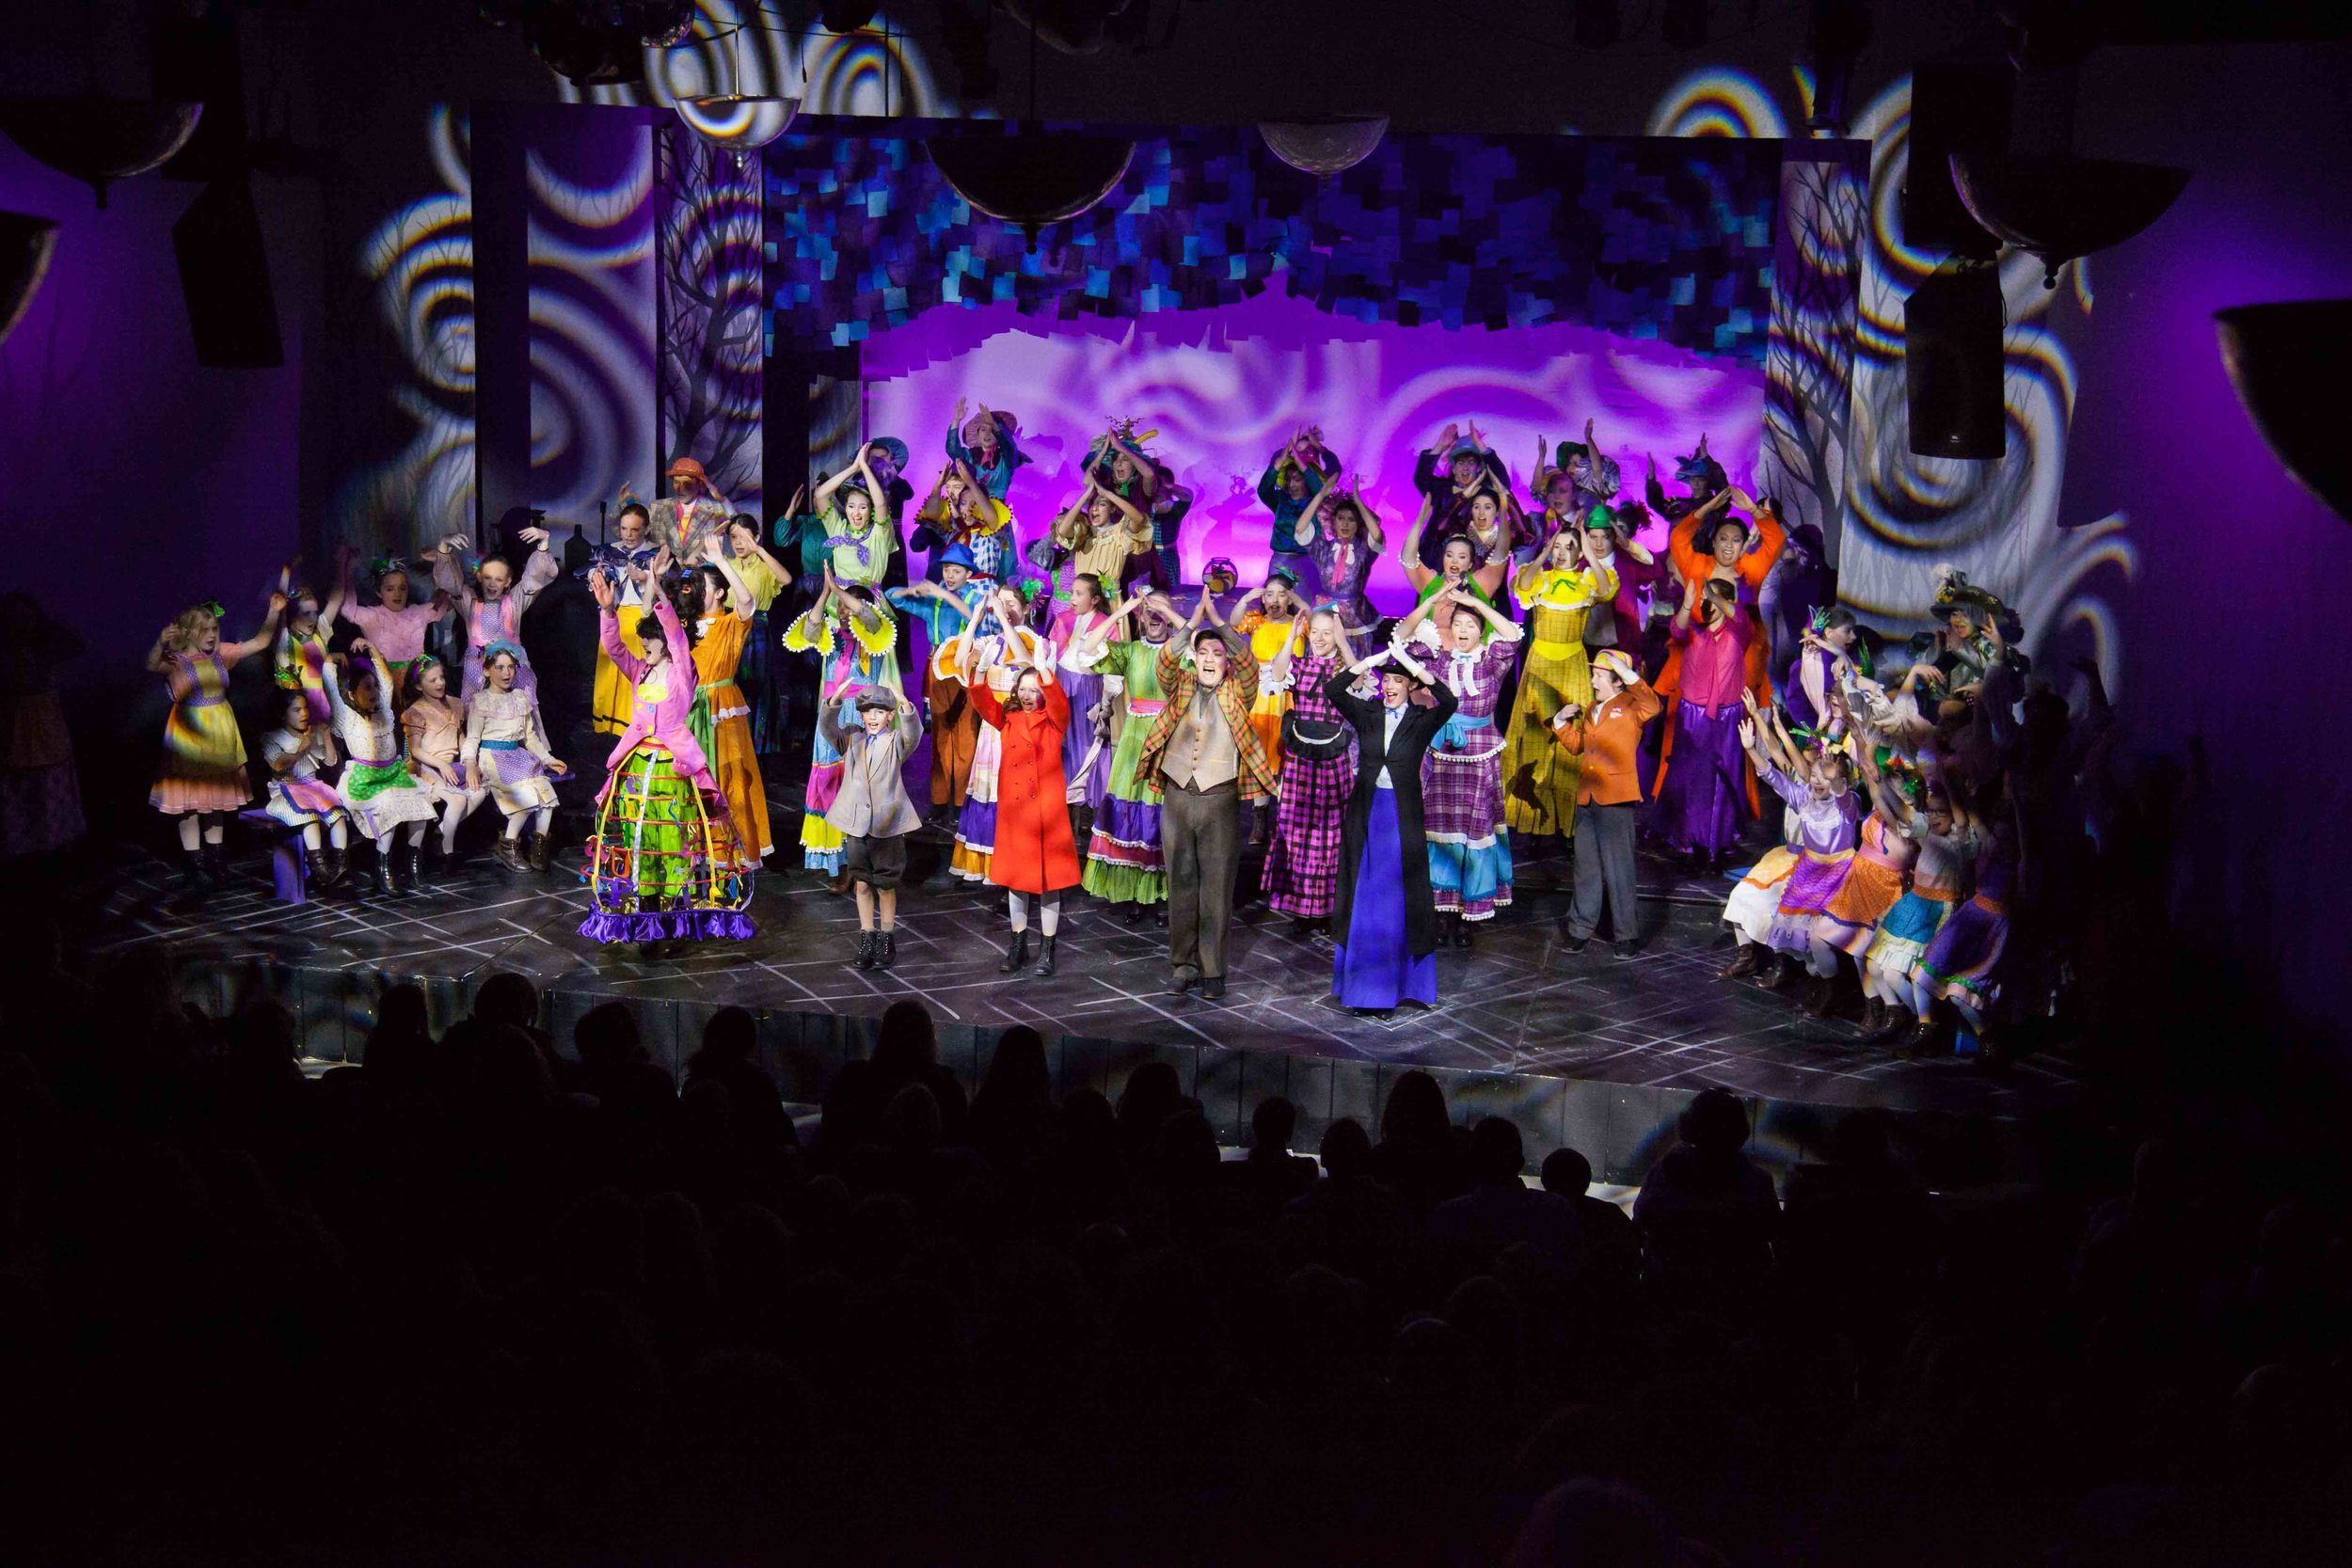 2-4-16 Mary Poppins Proper Cast 0271.jpg